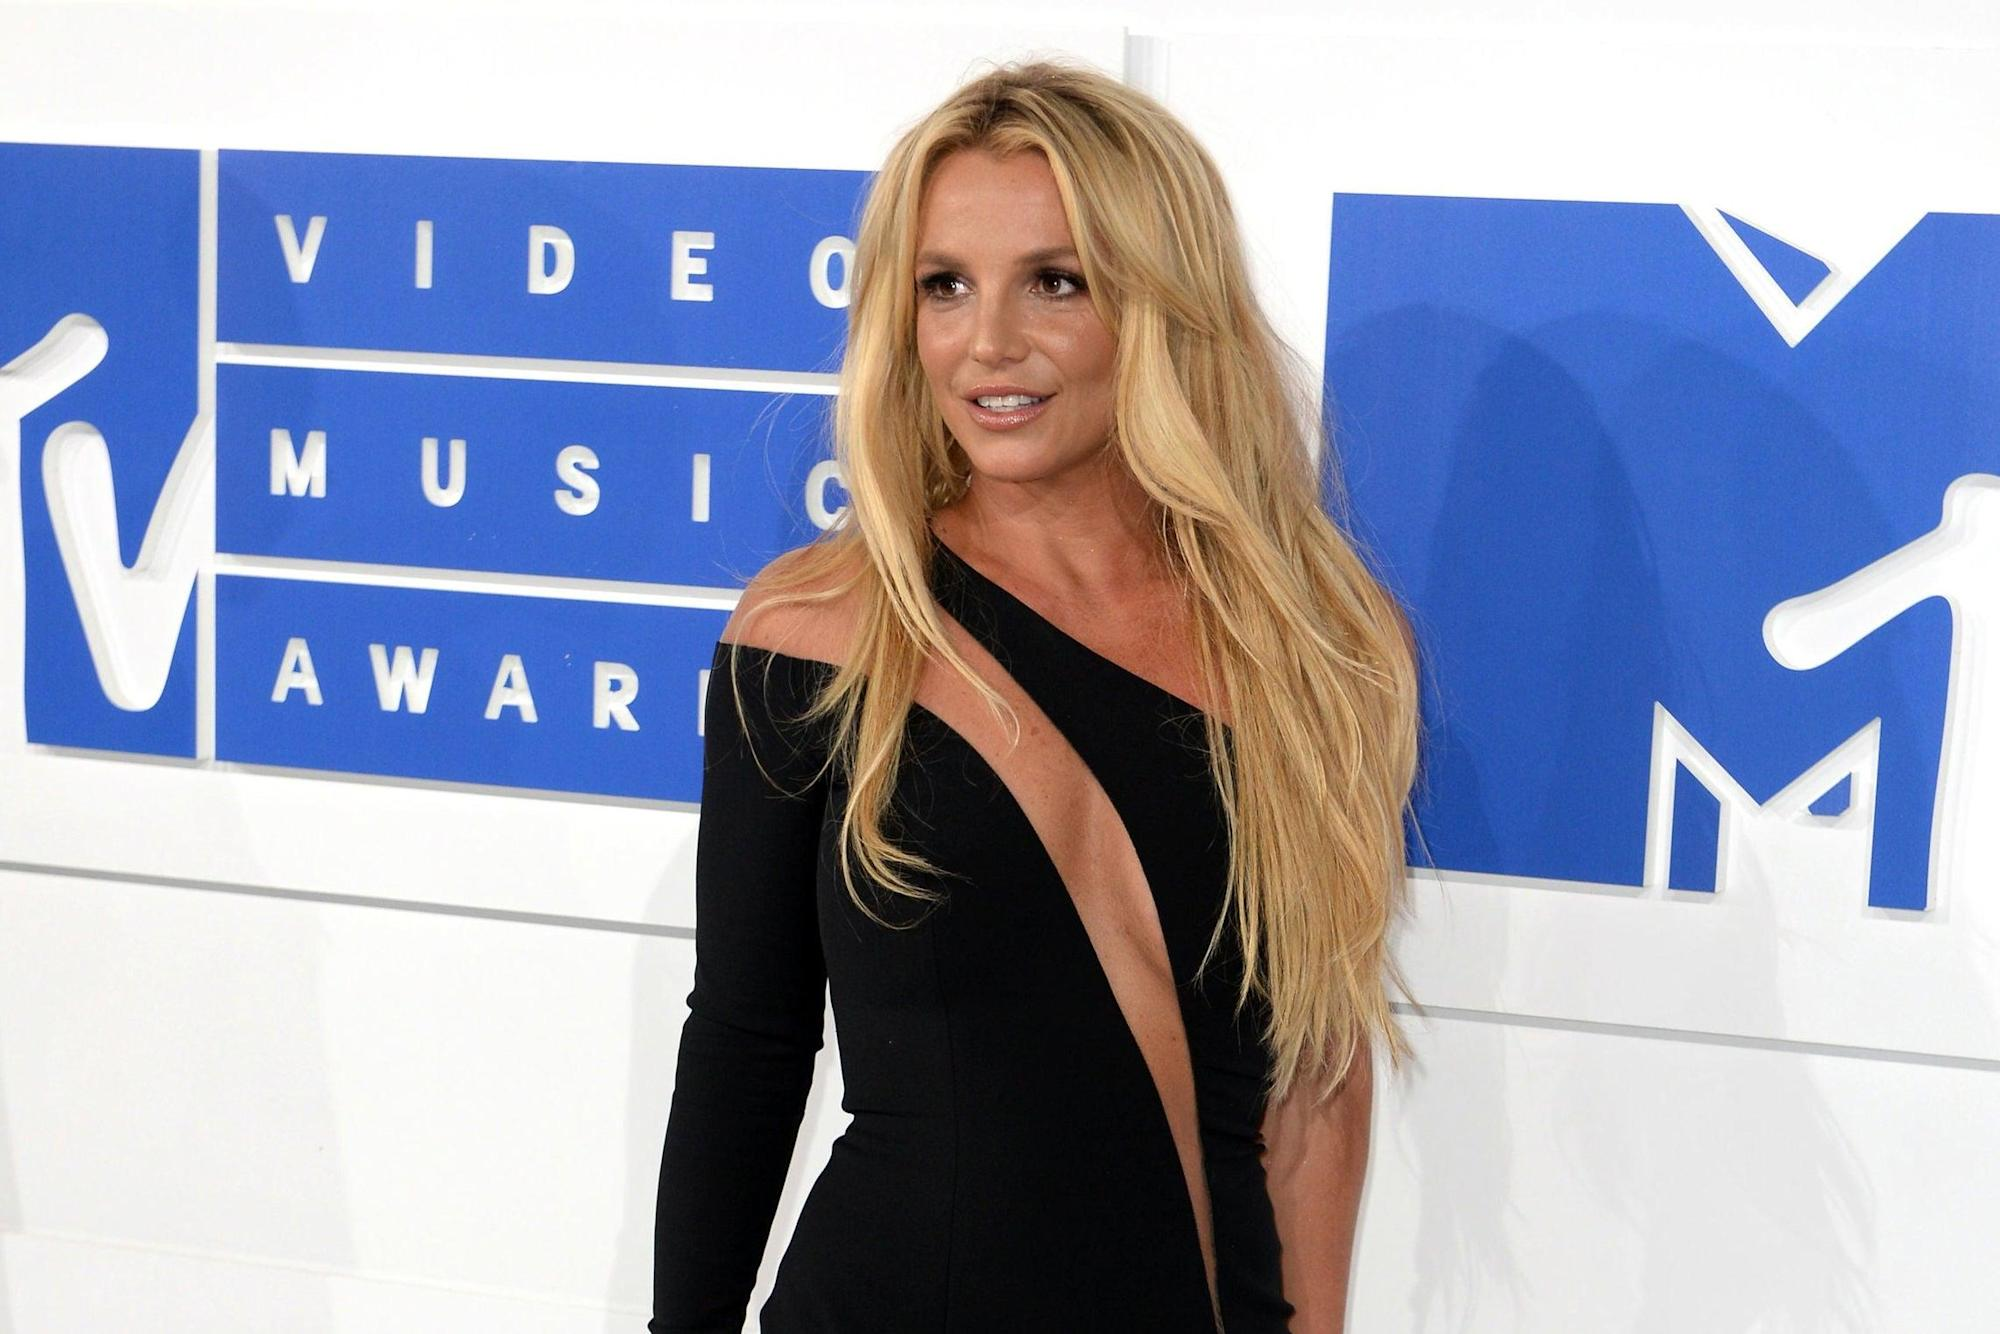 Britney Spears celebrates court victory with cartwheels after judge appoints her lawyer of choice